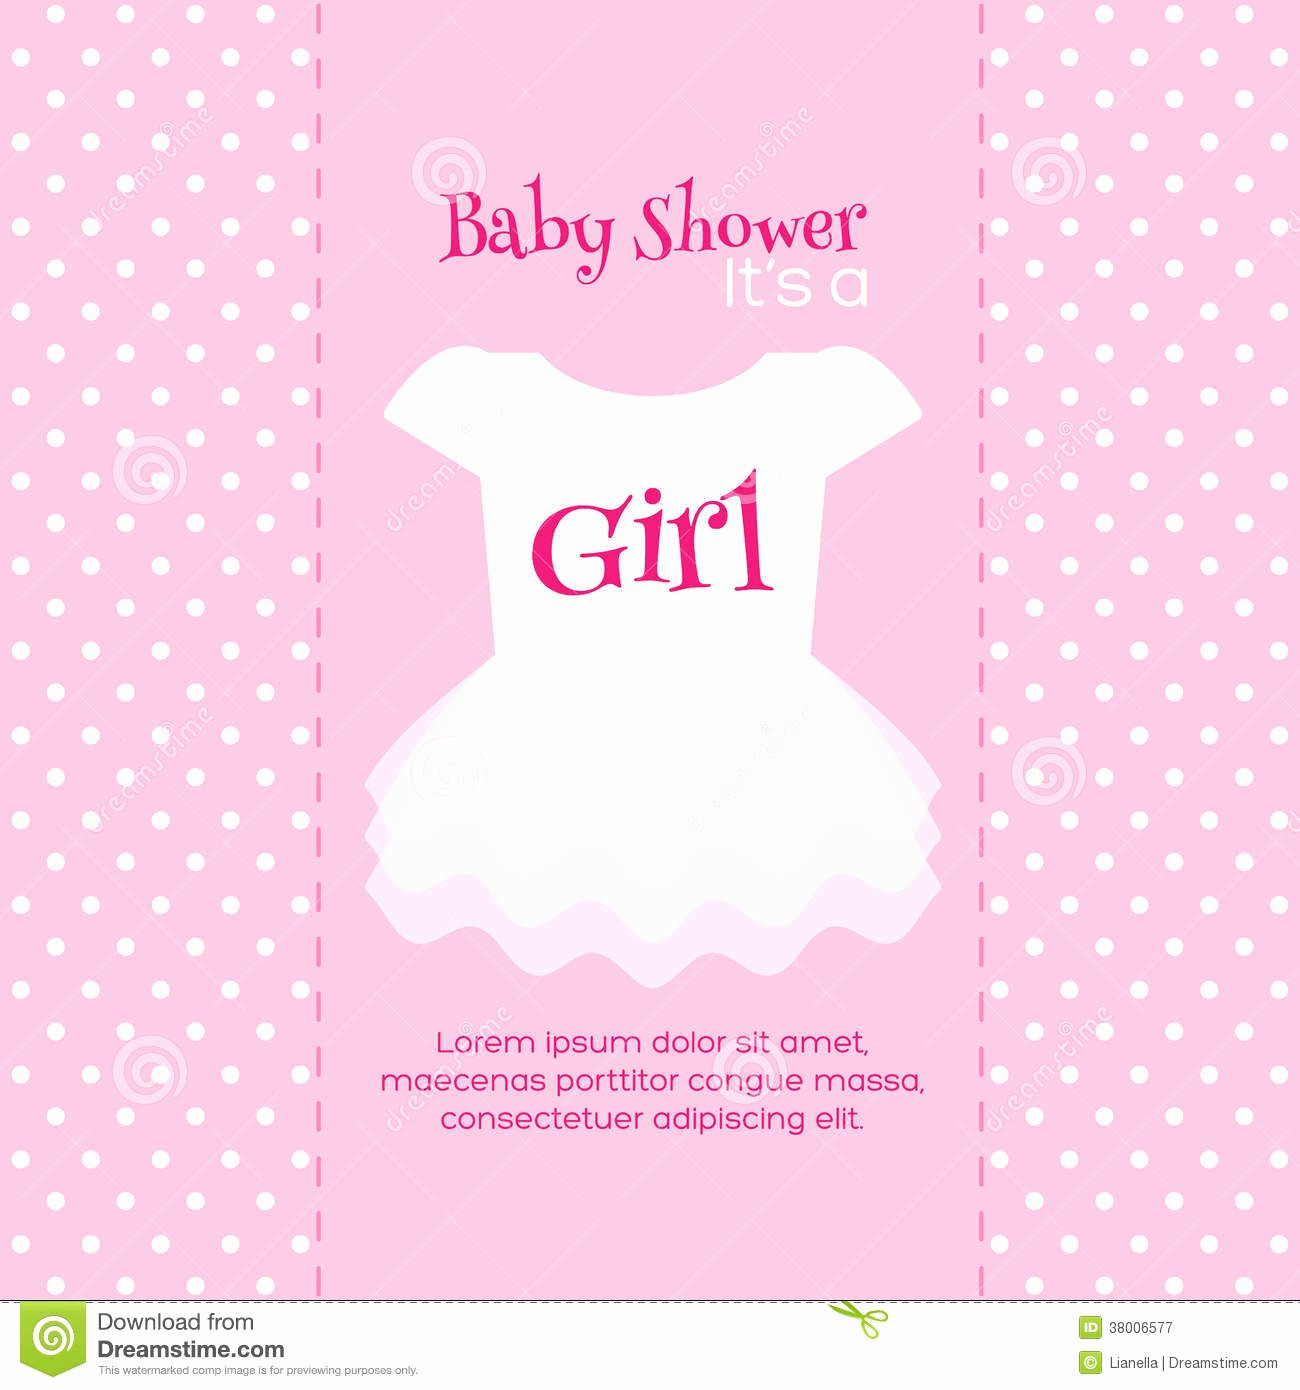 Template for Baby Shower Invitation Elegant Microsoft Word Templates for Business Cards